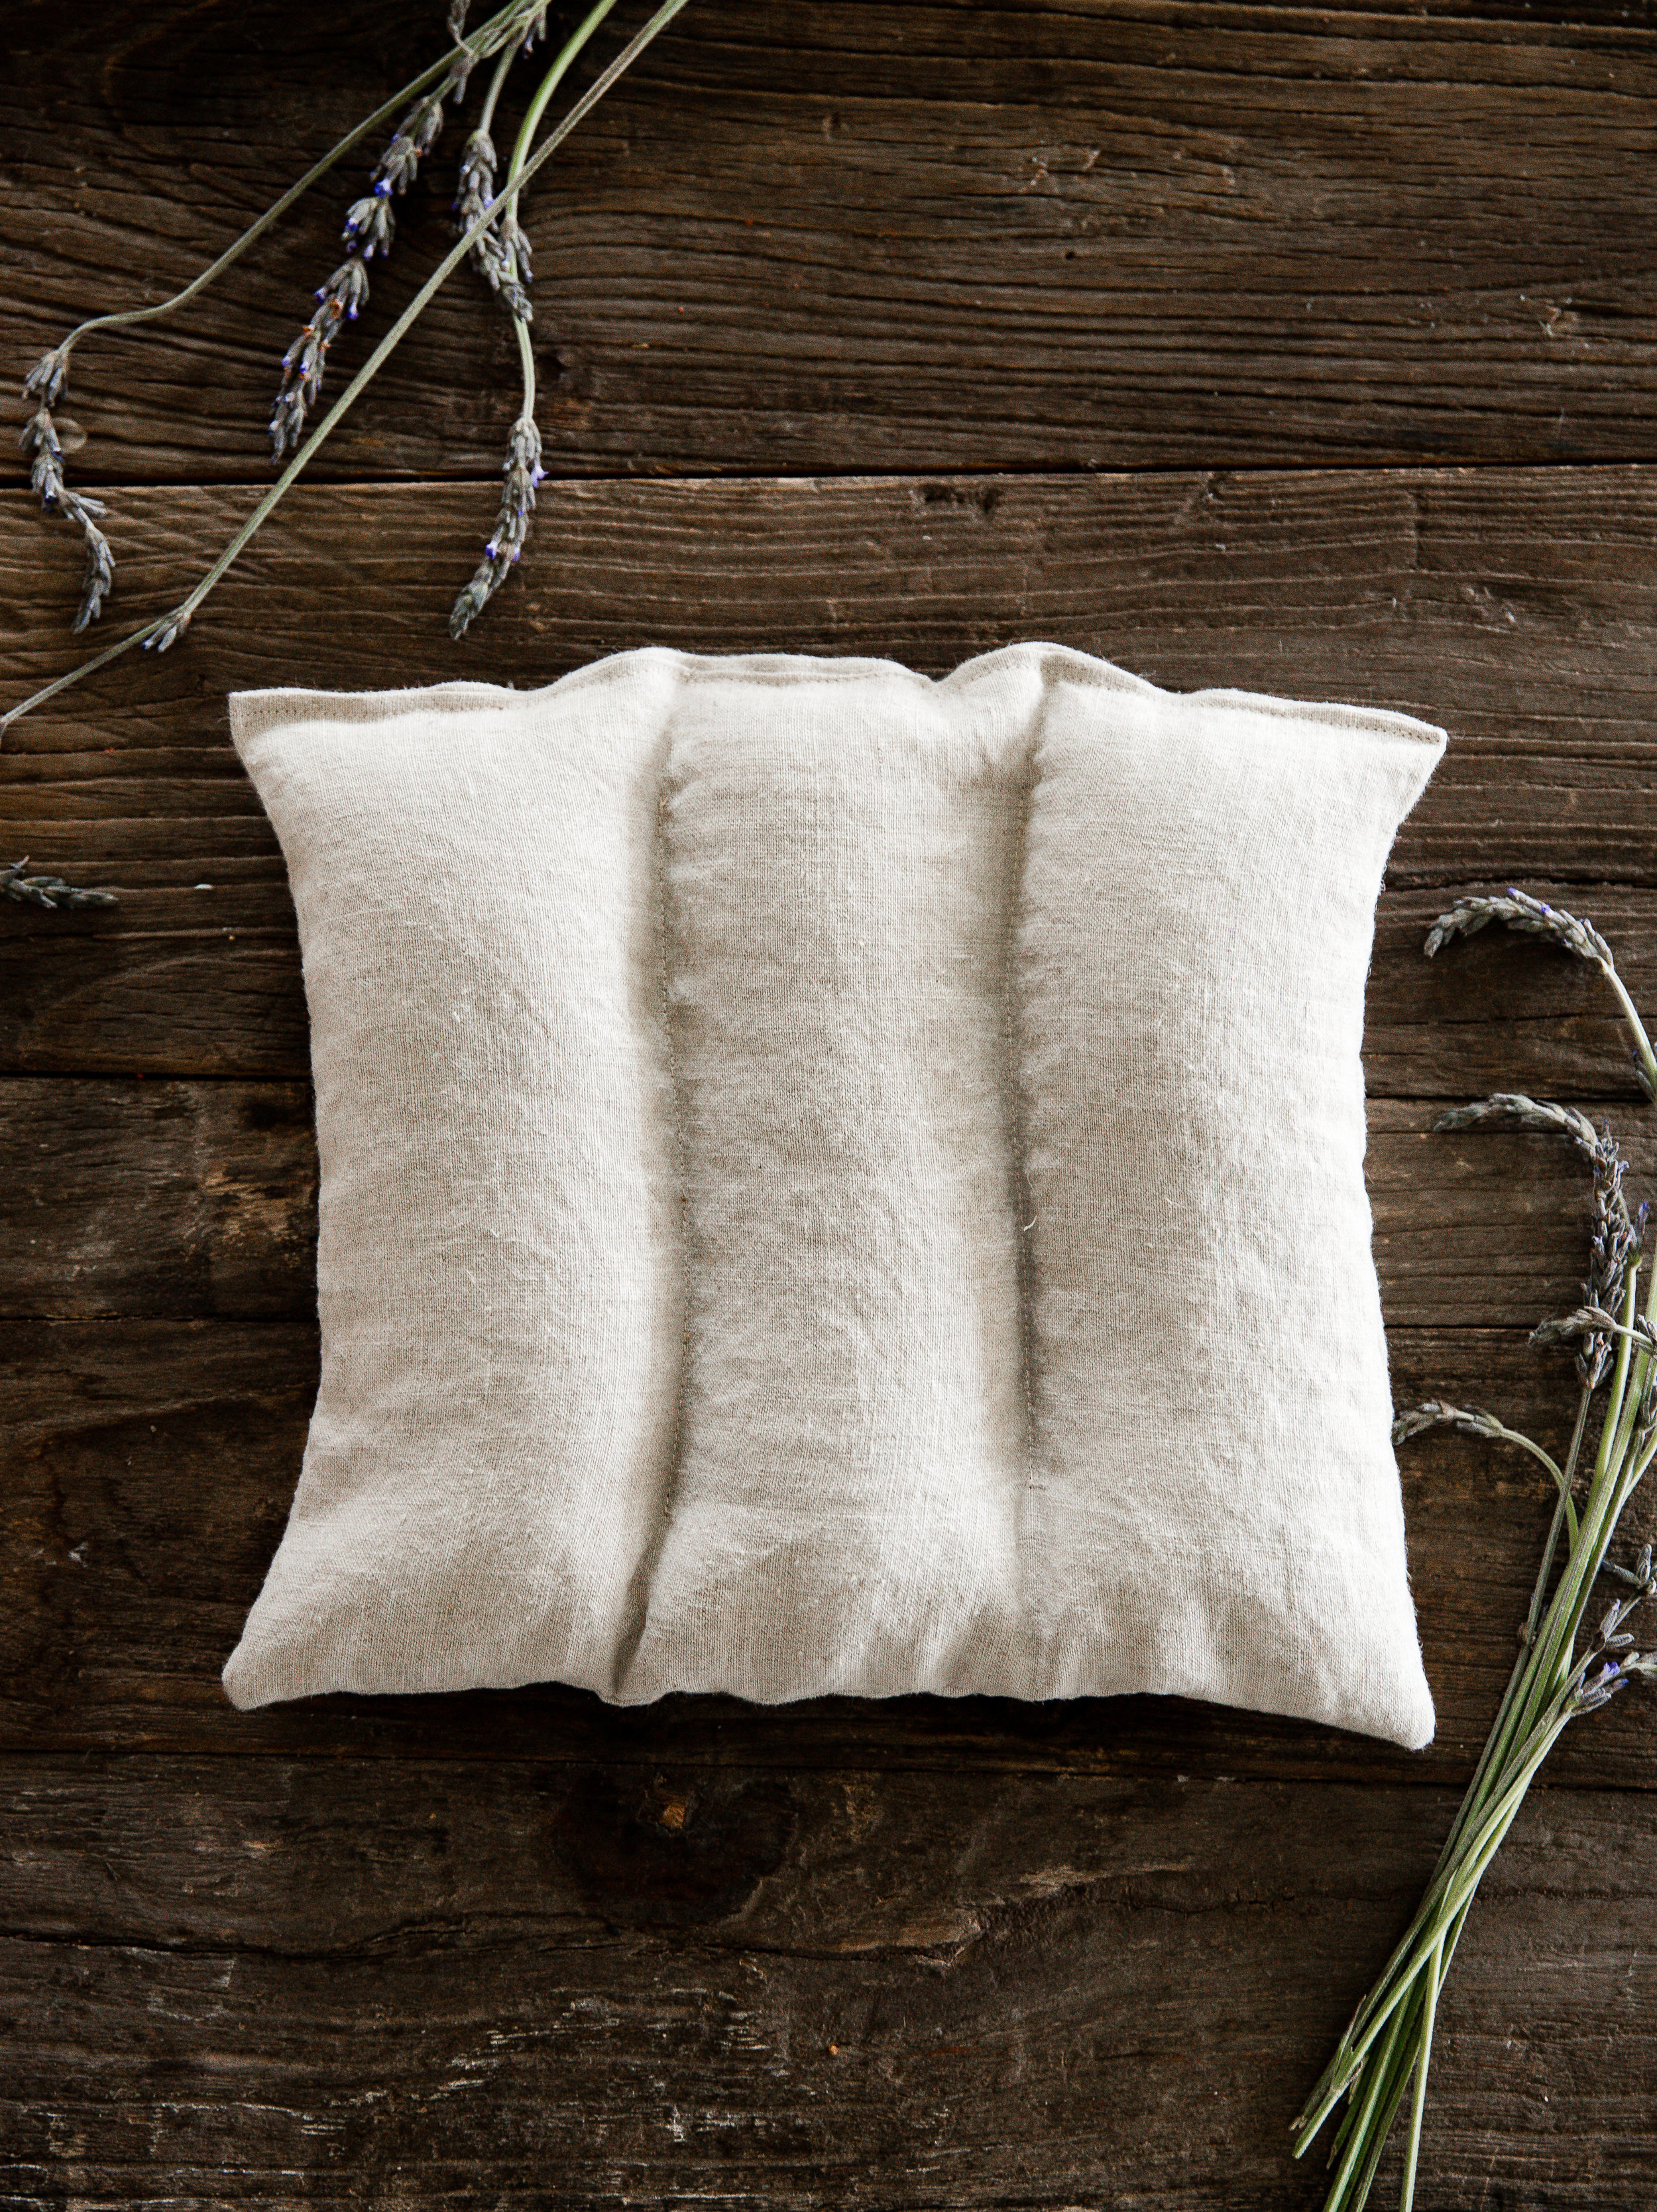 Use scrap fabric to make your own homemade rice heating pad - perfect for back pain or for a DIY gift! Plus add essential oil and dried lavender for an even more relaxing heating pad! #essentialoil #heatingpad #riceheatingpad #boxwoodavenue #sewingprojects